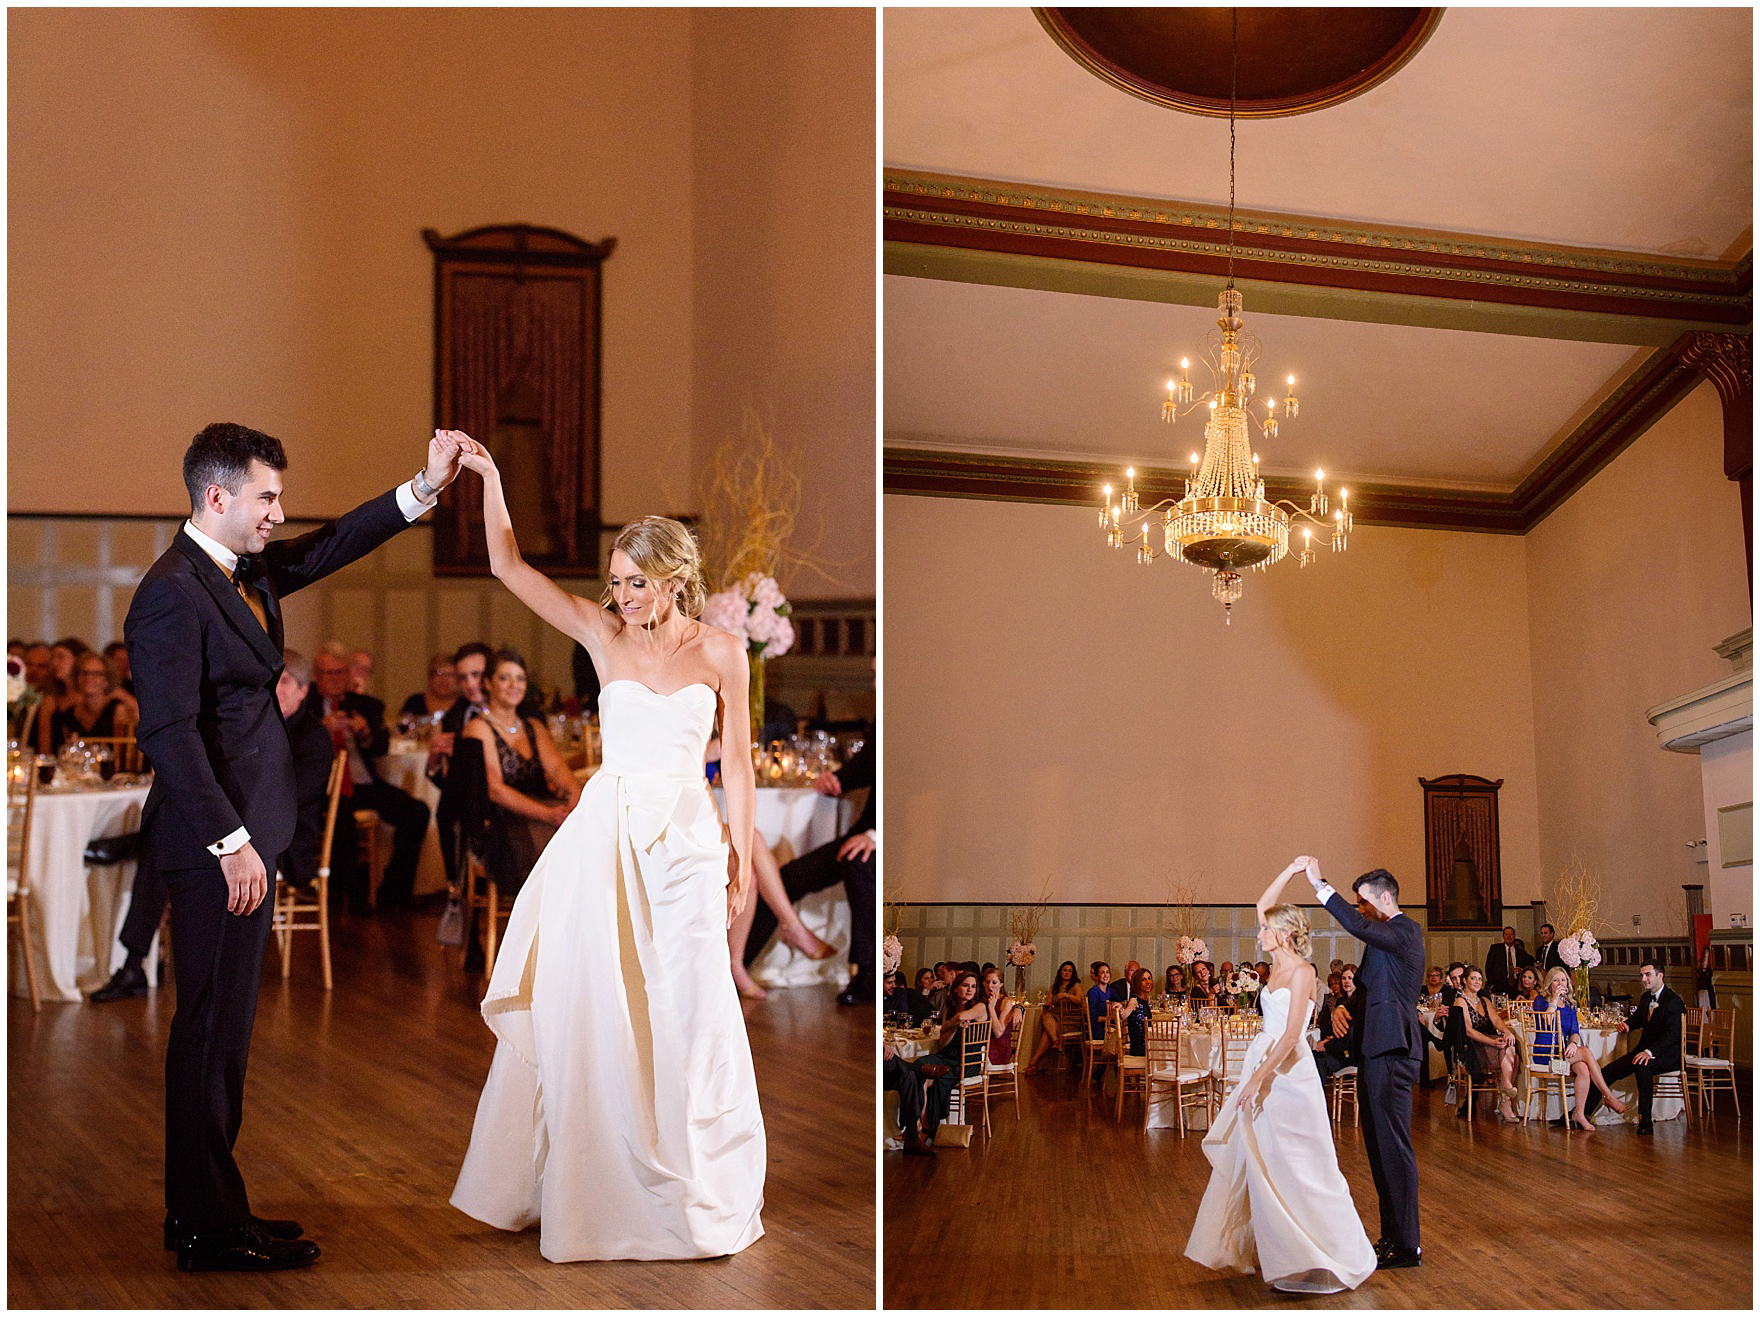 The groom twirls the bride during a St. Clement Germania Place Chicago wedding.